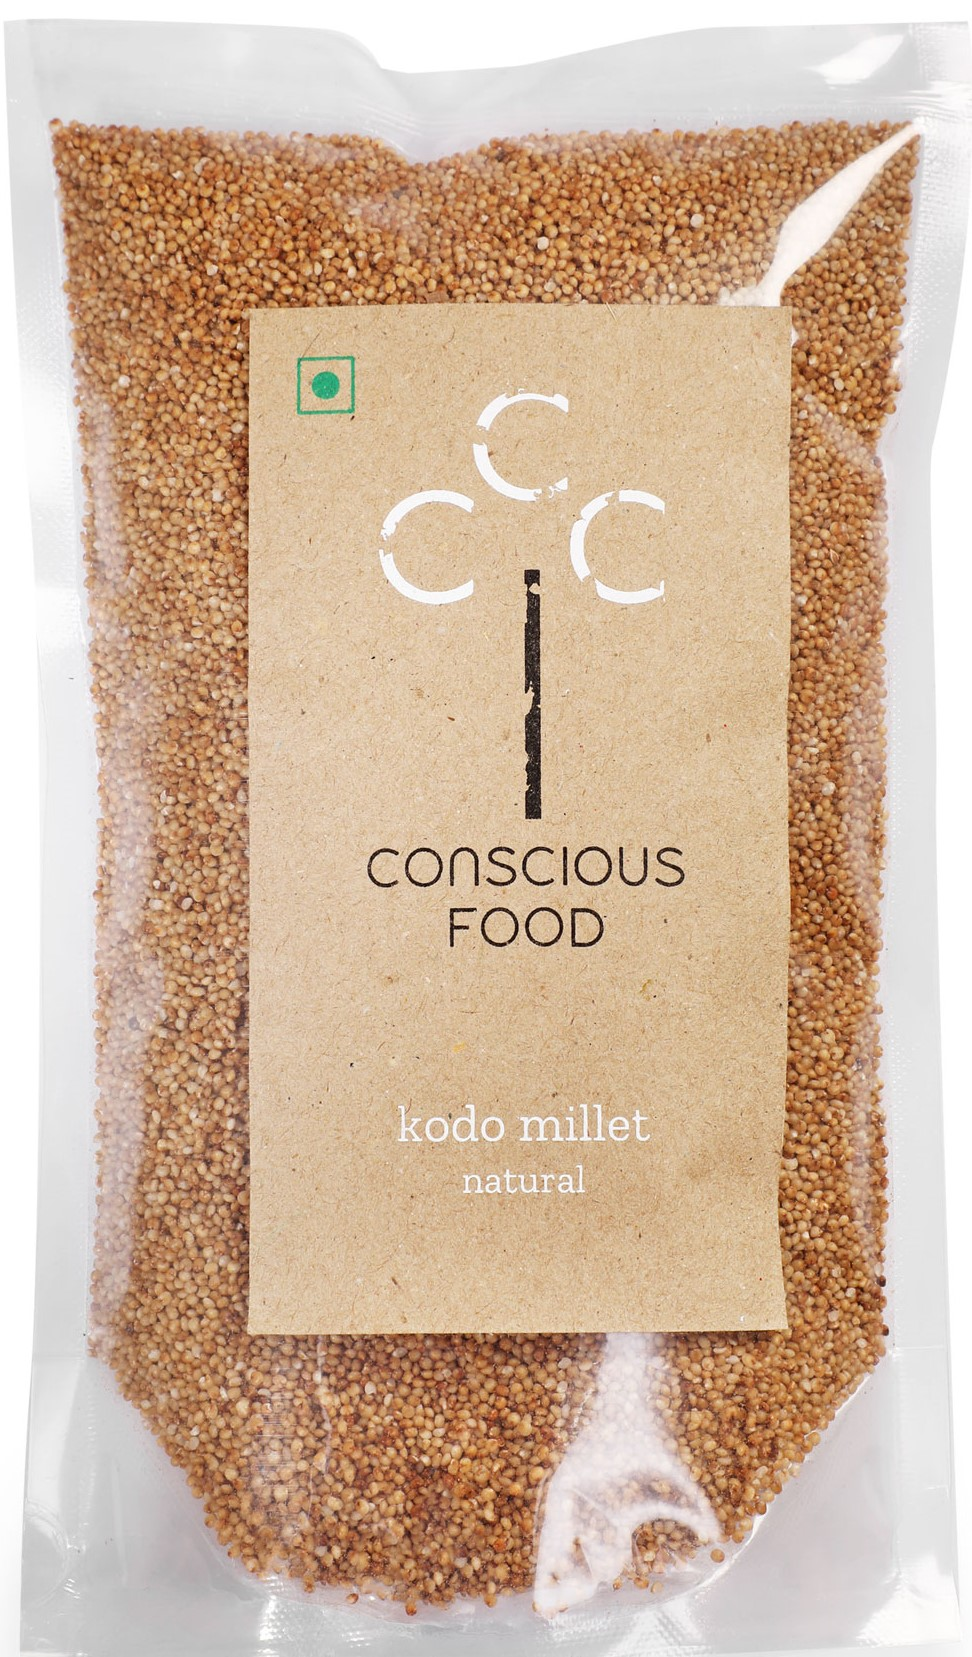 Kodo Millet by Conscious Foods